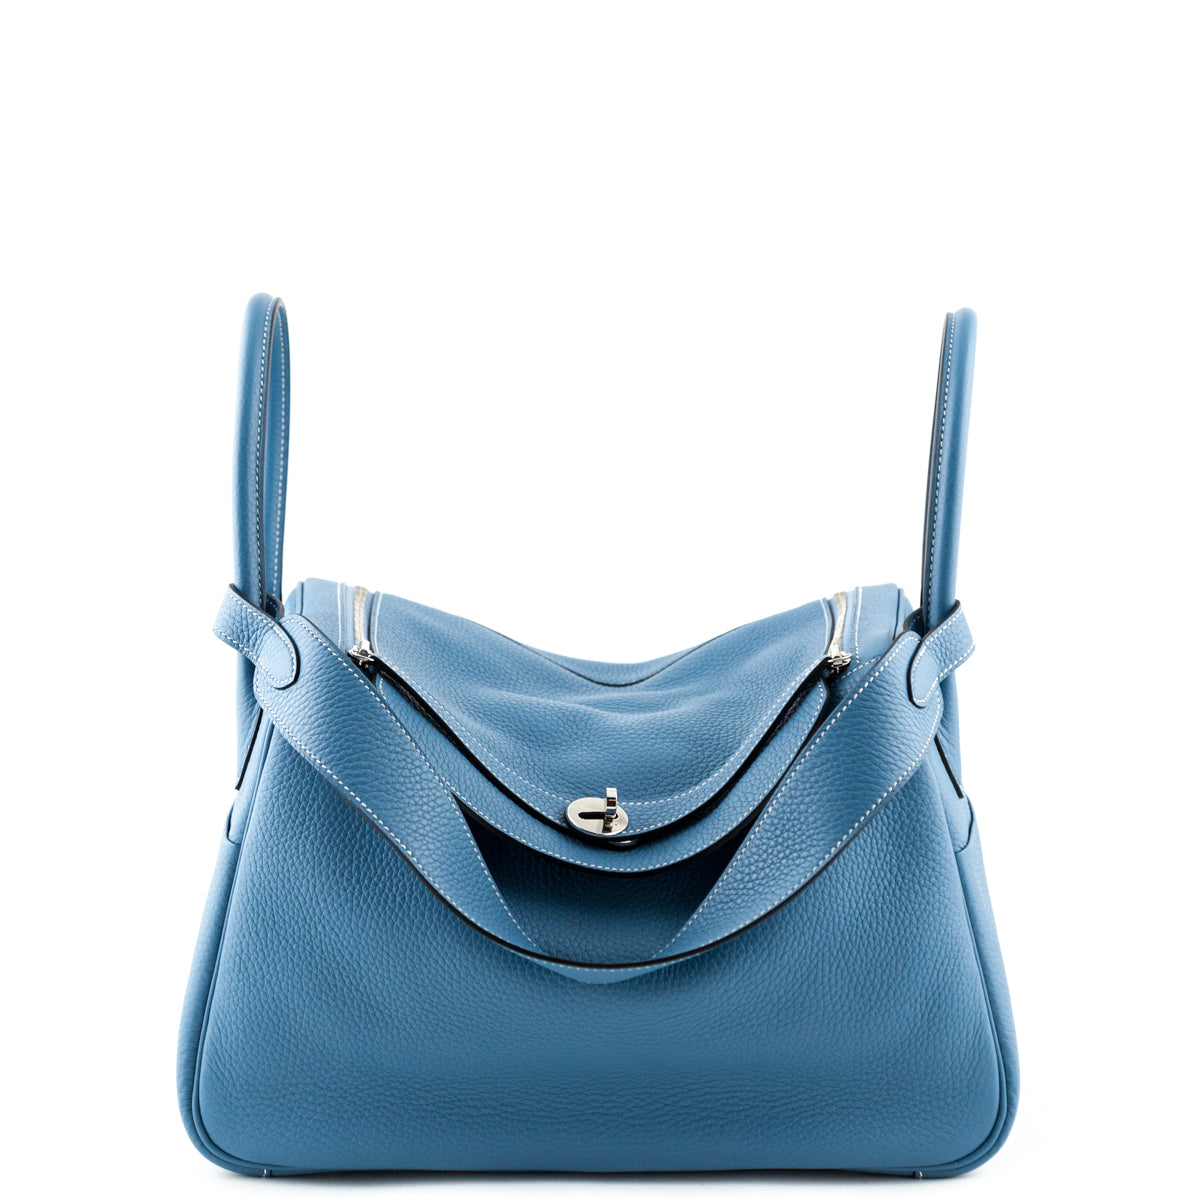 Hermes Blue Jeans Clemence Taurillon Lindy 34 - LOVE that BAG - Preowned  Authentic Designer Handbags ... 7f45ae5269623